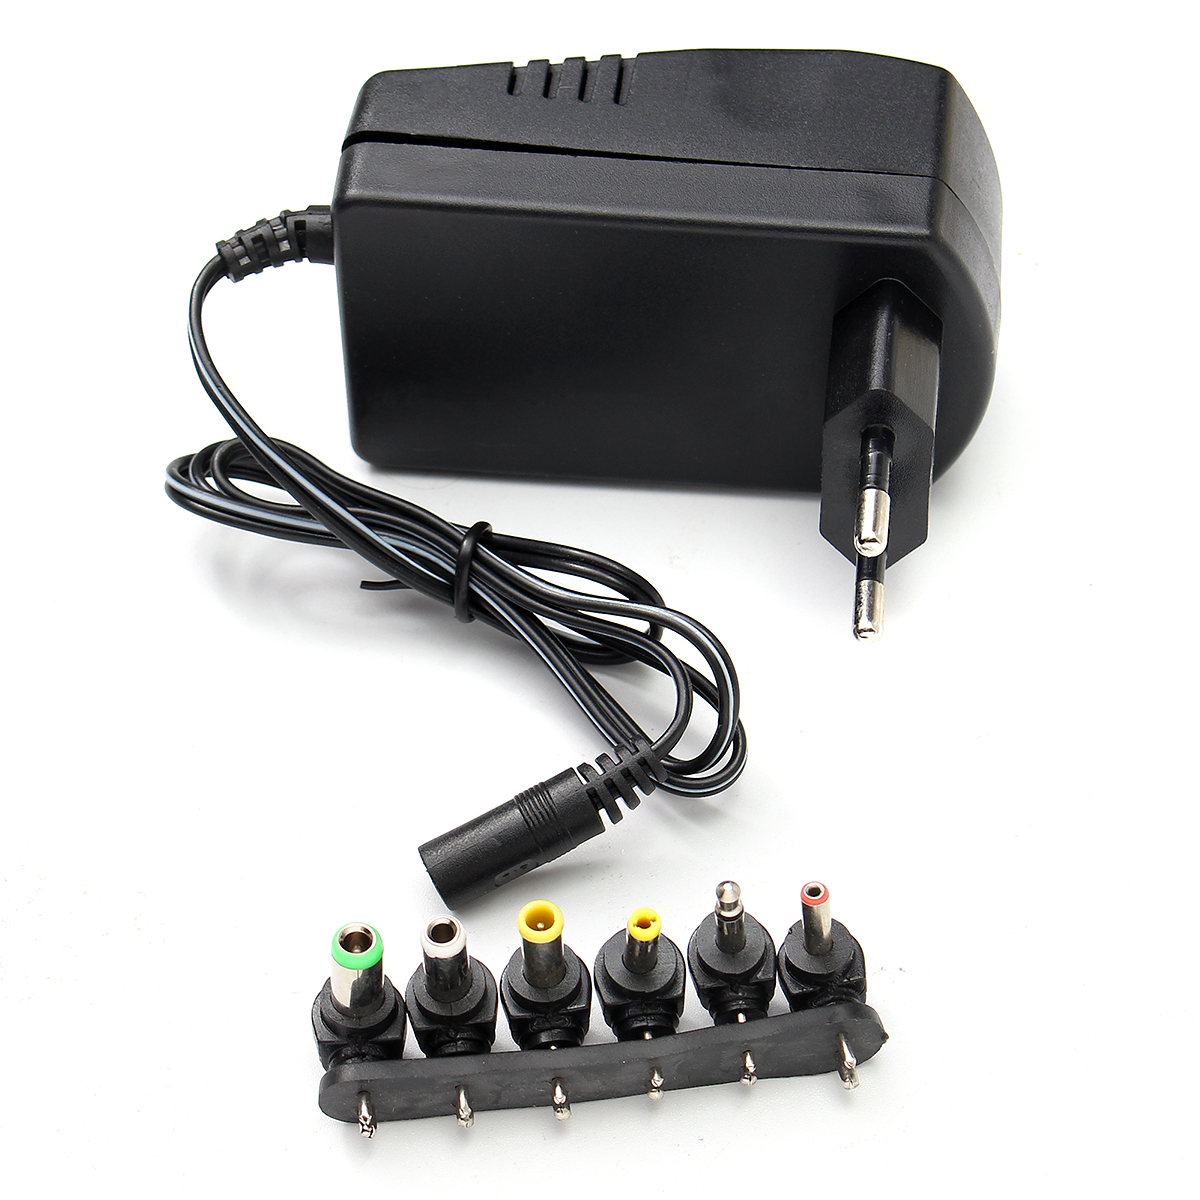 EU/US Plug 6 Voltage 3v <font><b>4.5v</b></font> 5v 6v 9v 12v <font><b>DC</b></font> Adaptor Adjustable Power <font><b>Adapter</b></font> Universal Charger Power Supply Converter Cable image